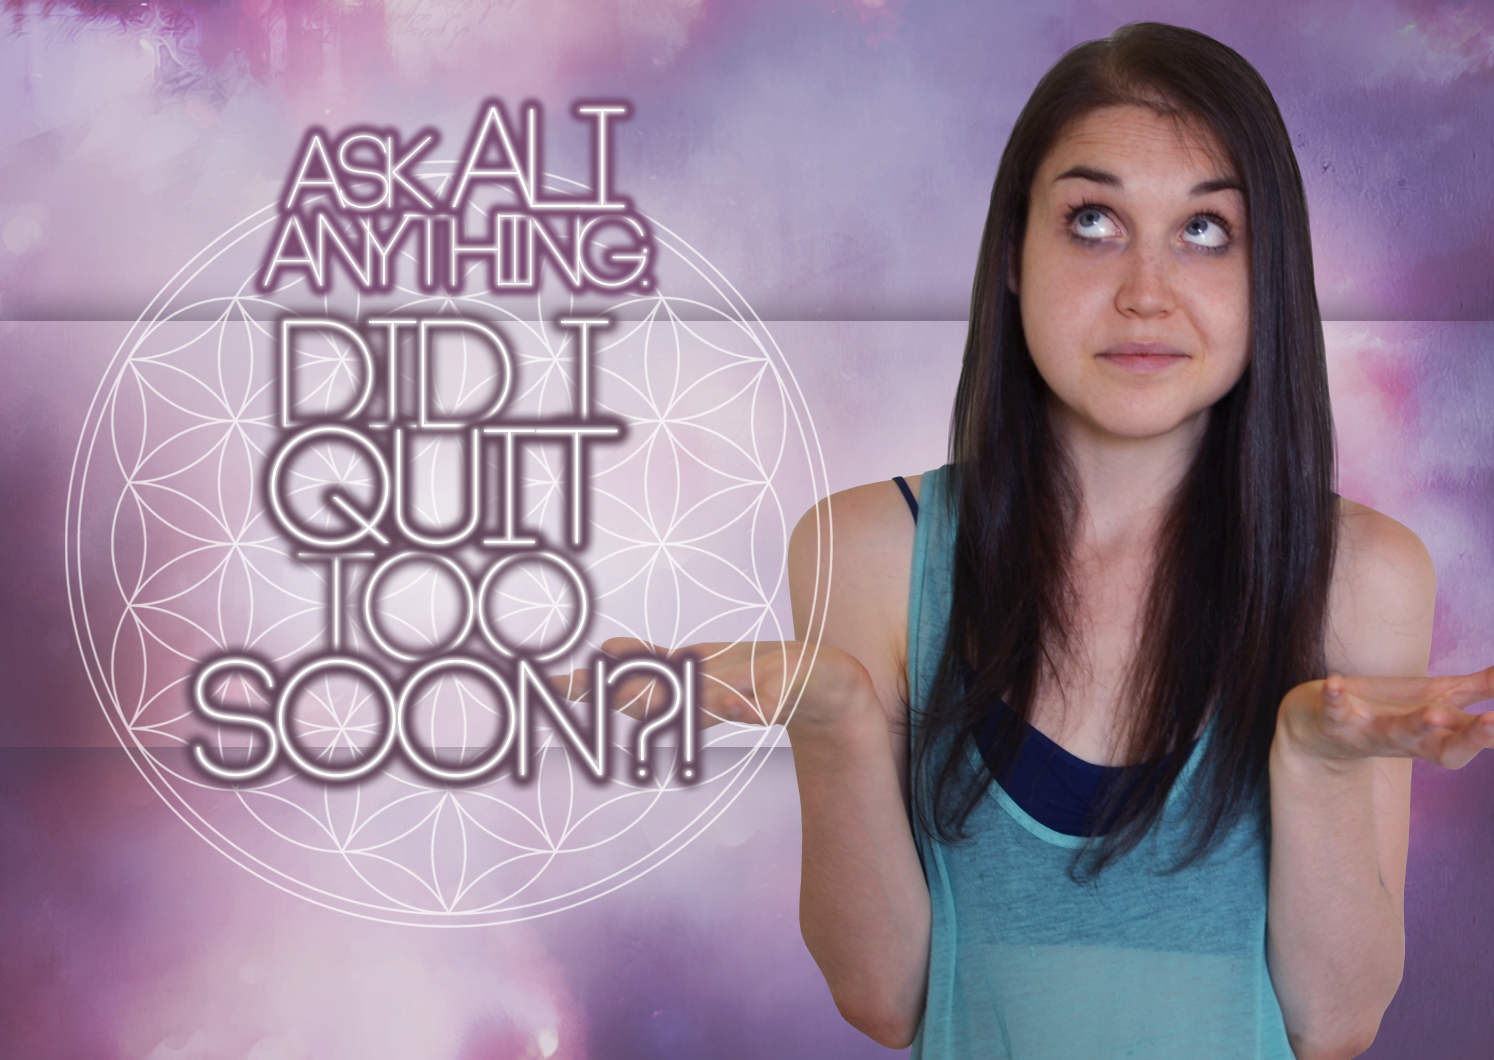 Ask Aliyah Anything: Did I Quit Too Soon?!